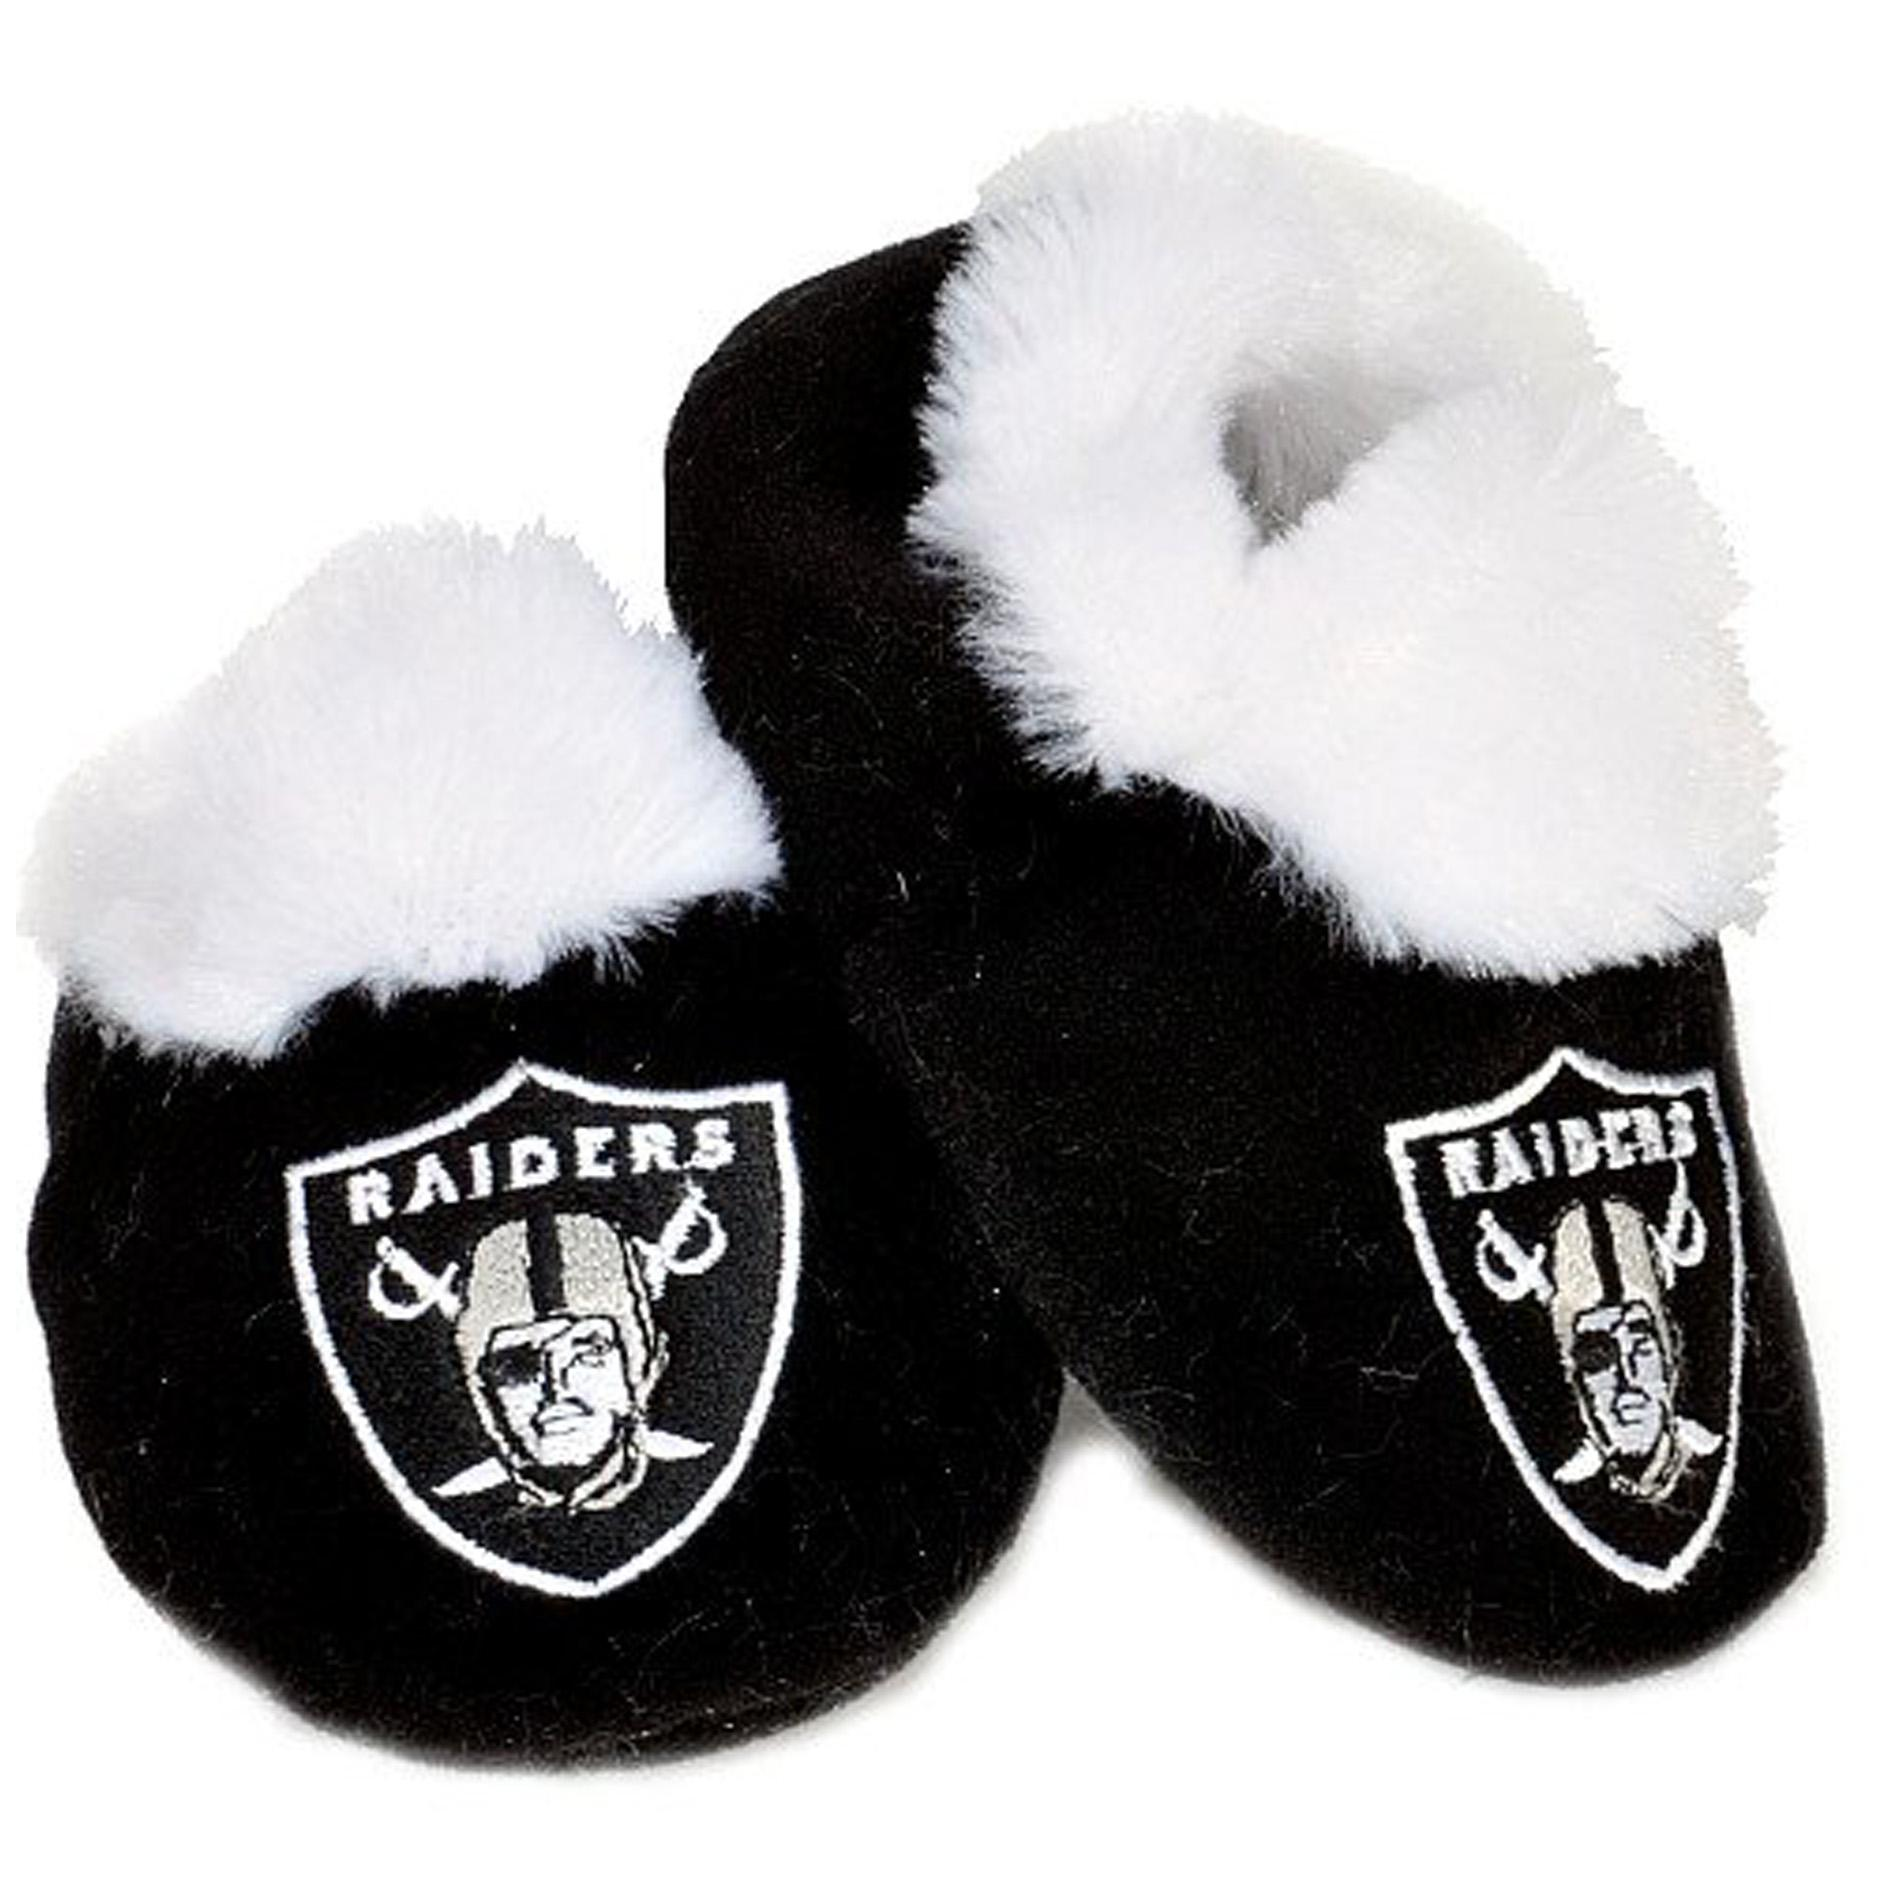 c6df936b671f Shop Oakland Raiders Baby Bootie Slippers - Free Shipping On Orders Over   45 - Overstock - 5915946